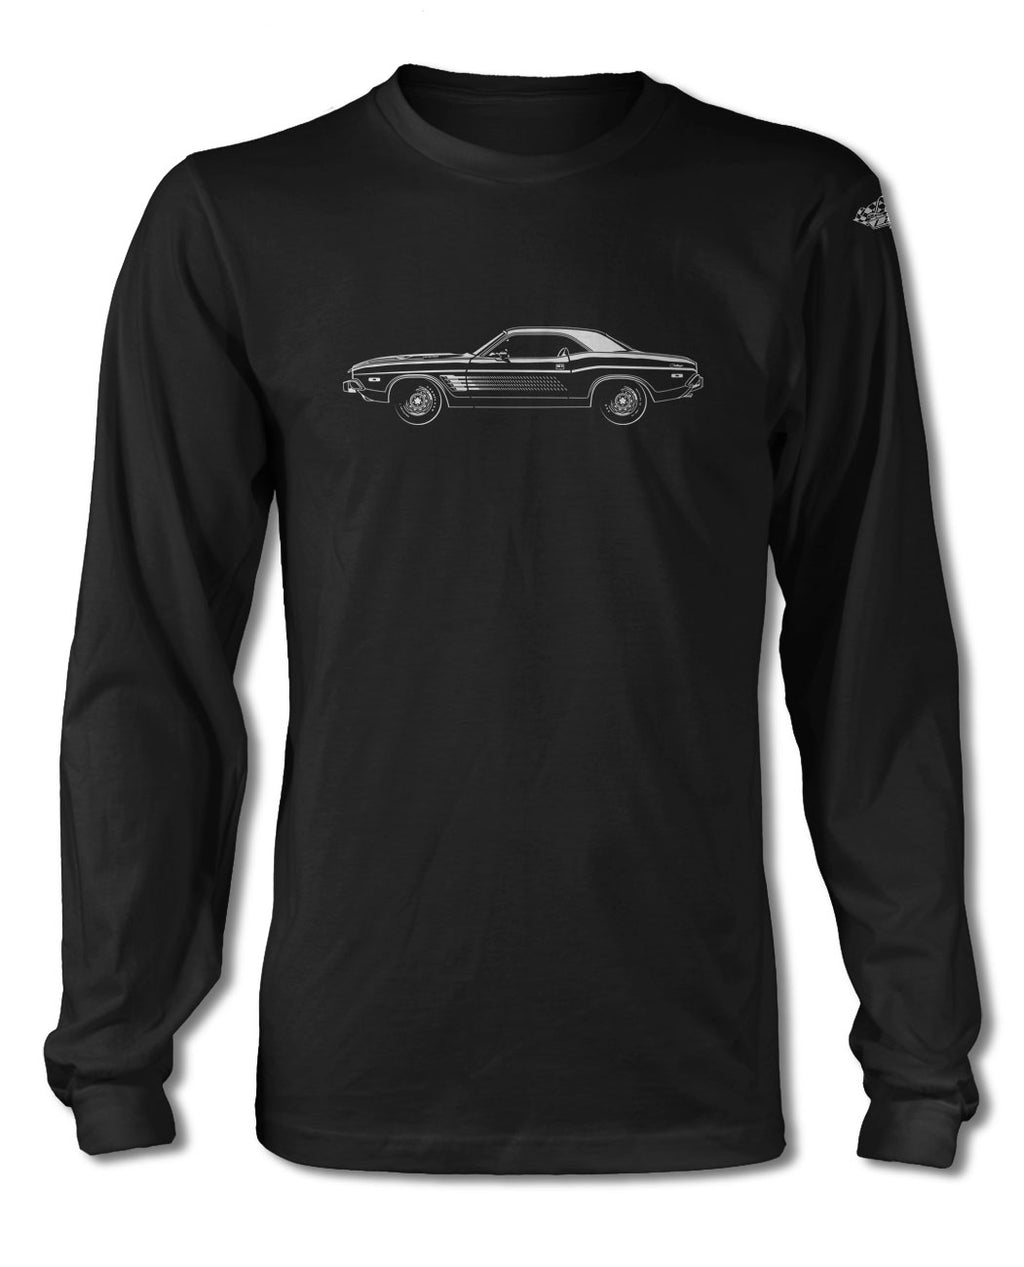 1973 Dodge Challenger Rallye with Stripes Coupe T-Shirt - Long Sleeves - Side View